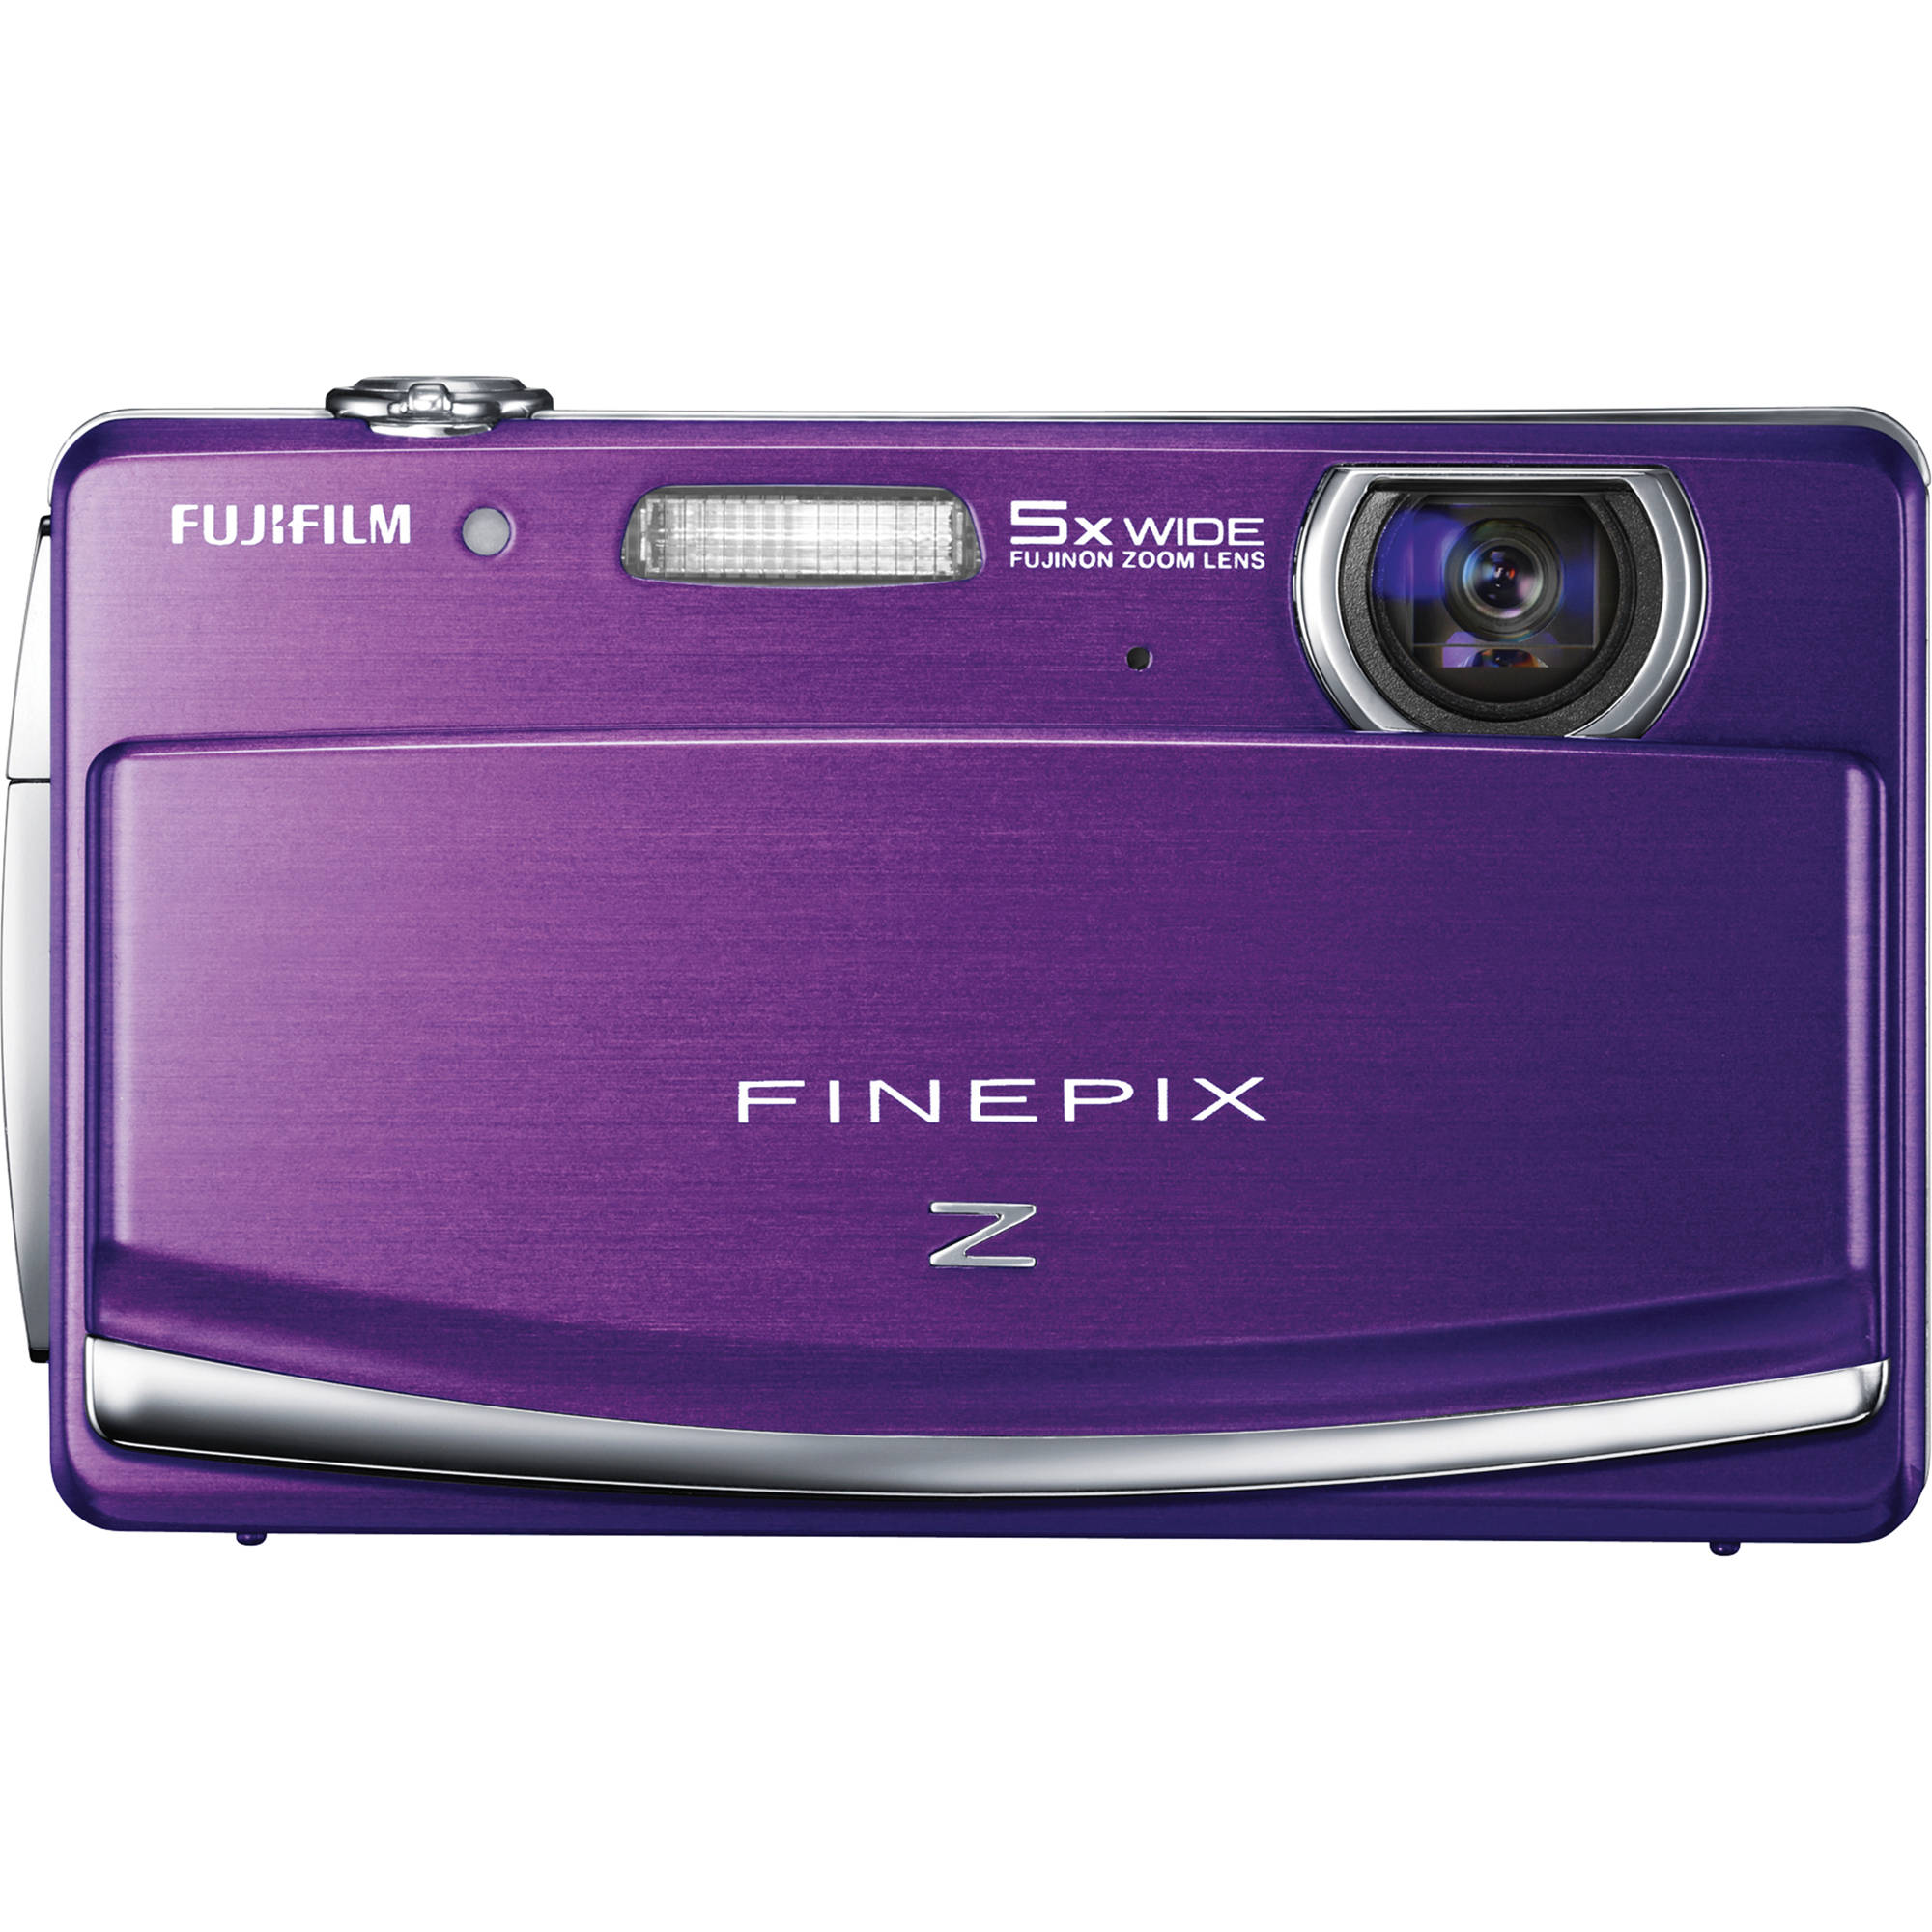 fujifilm finepix z90 digital camera purple 16126143 b h photo rh bhphotovideo com fujifilm z90 user manual fujifilm z90 user manual